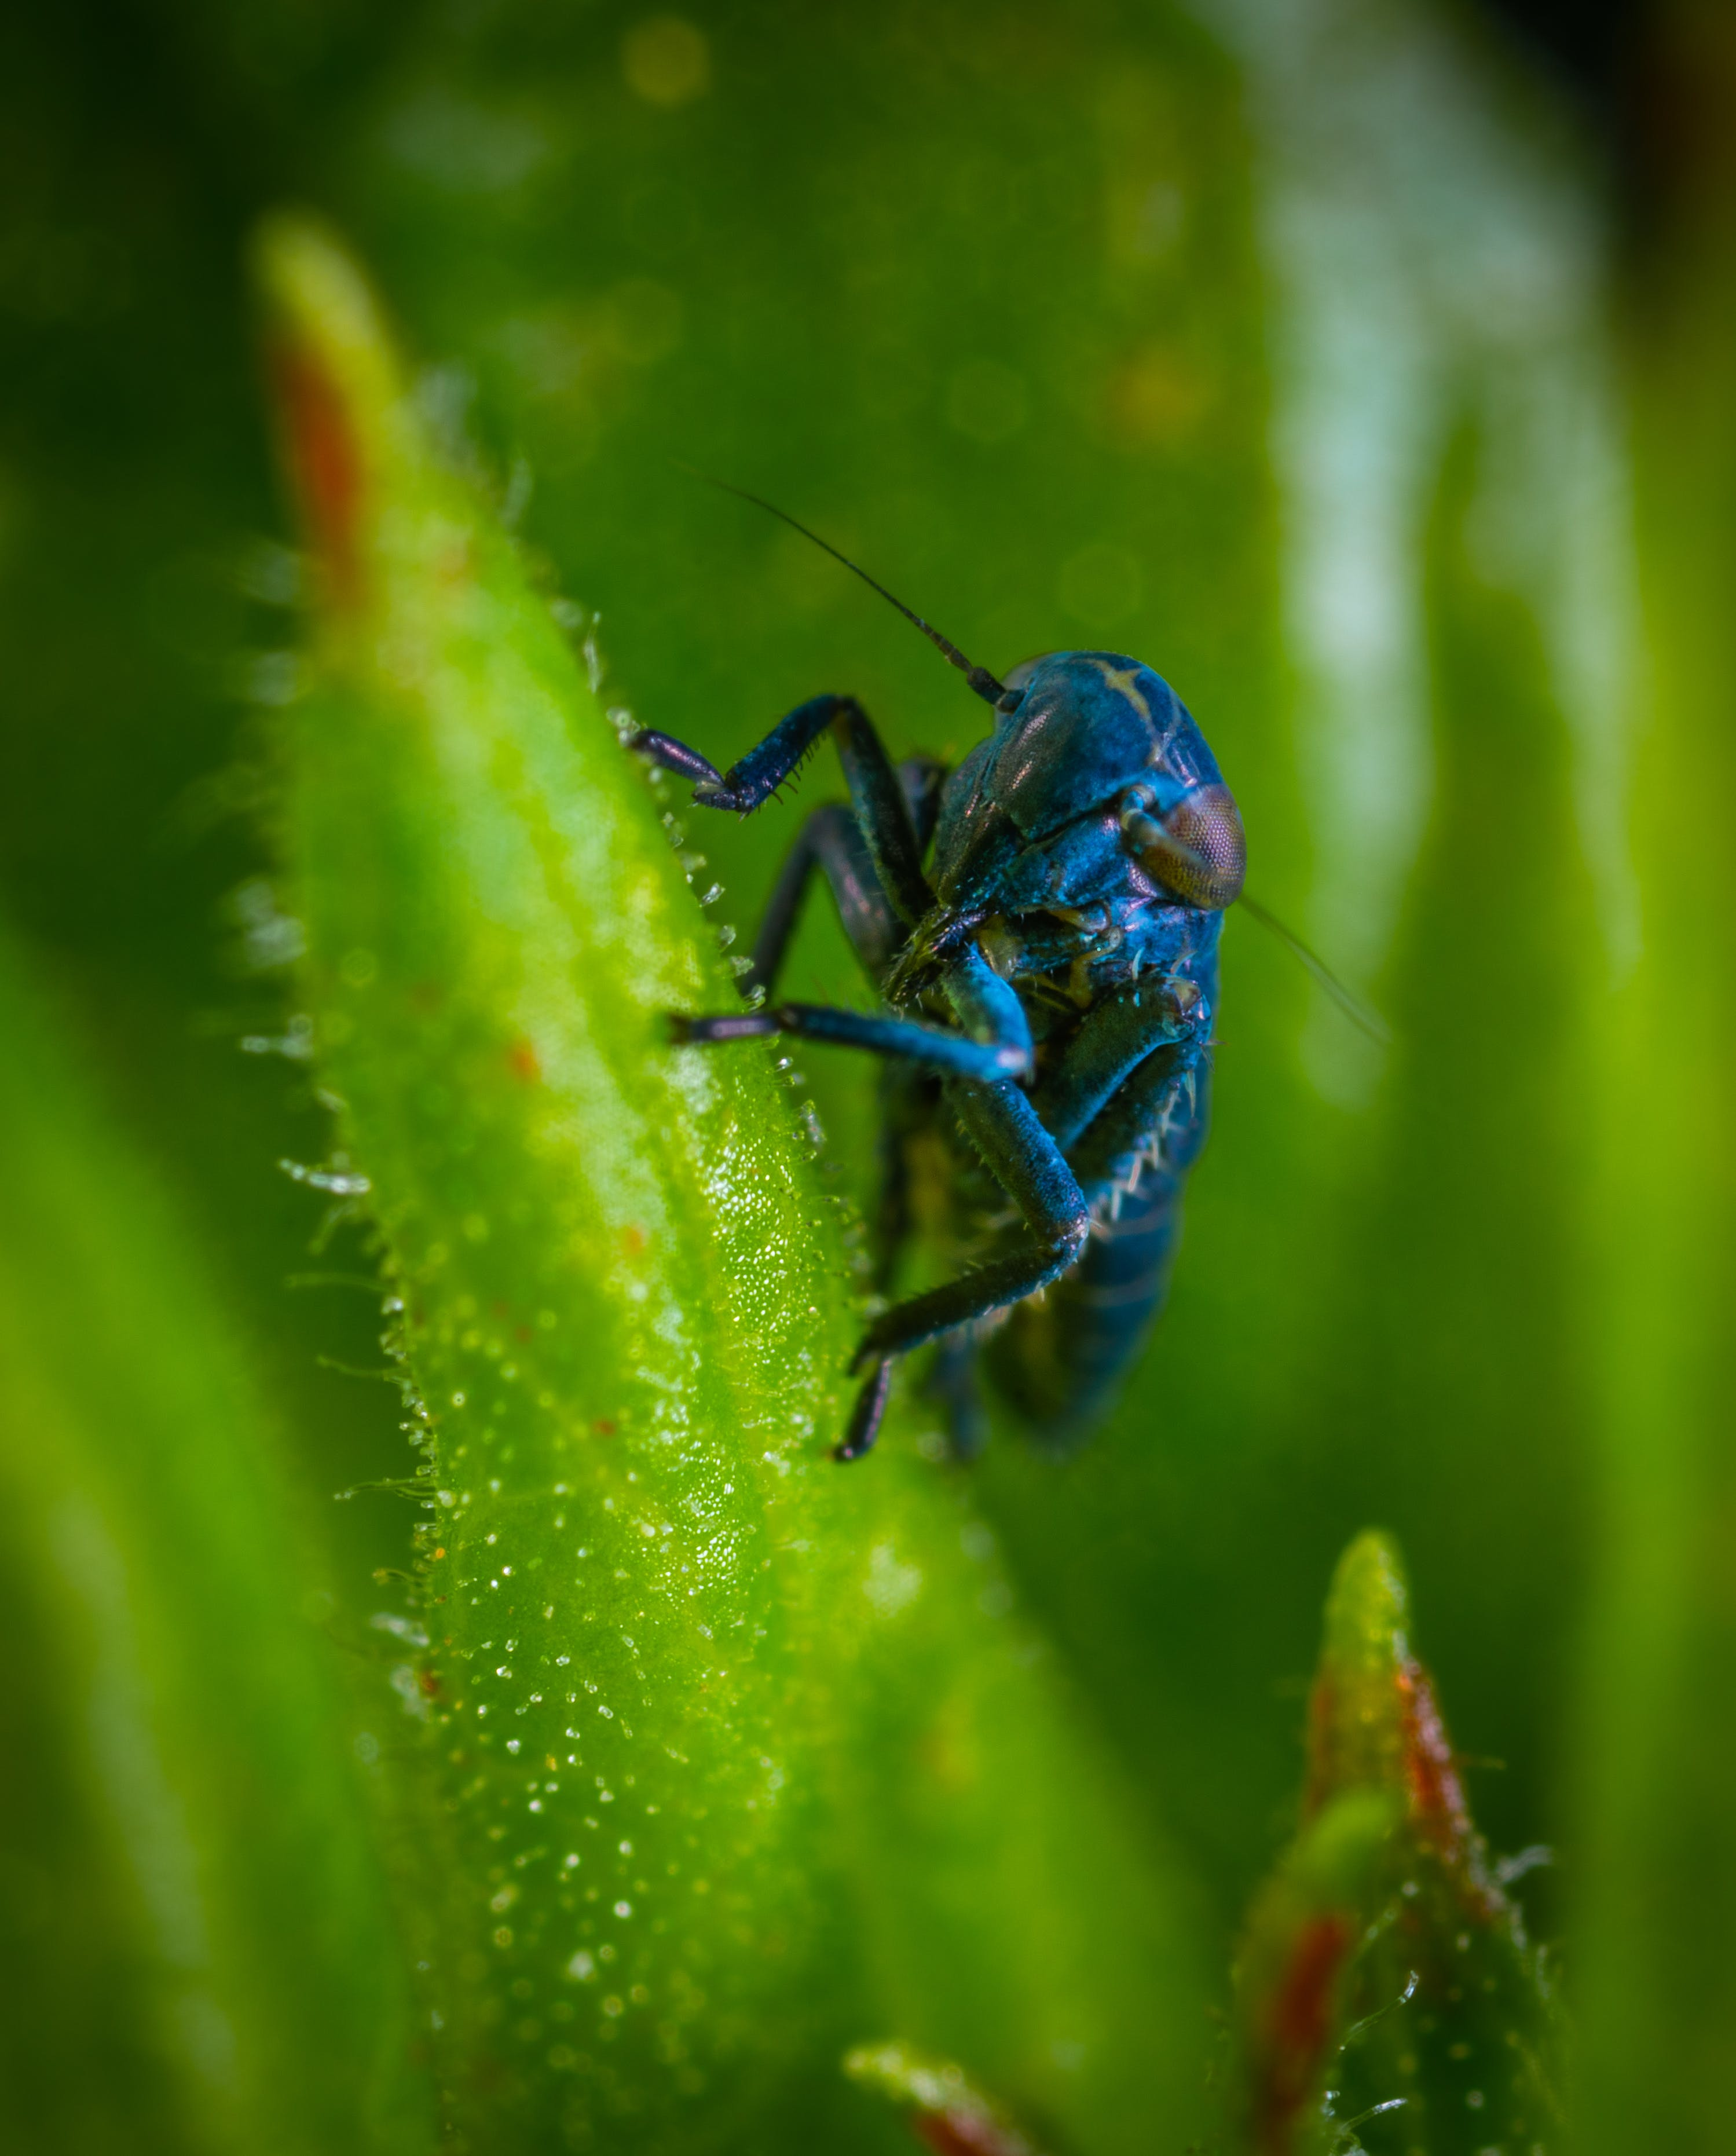 Blue Insect